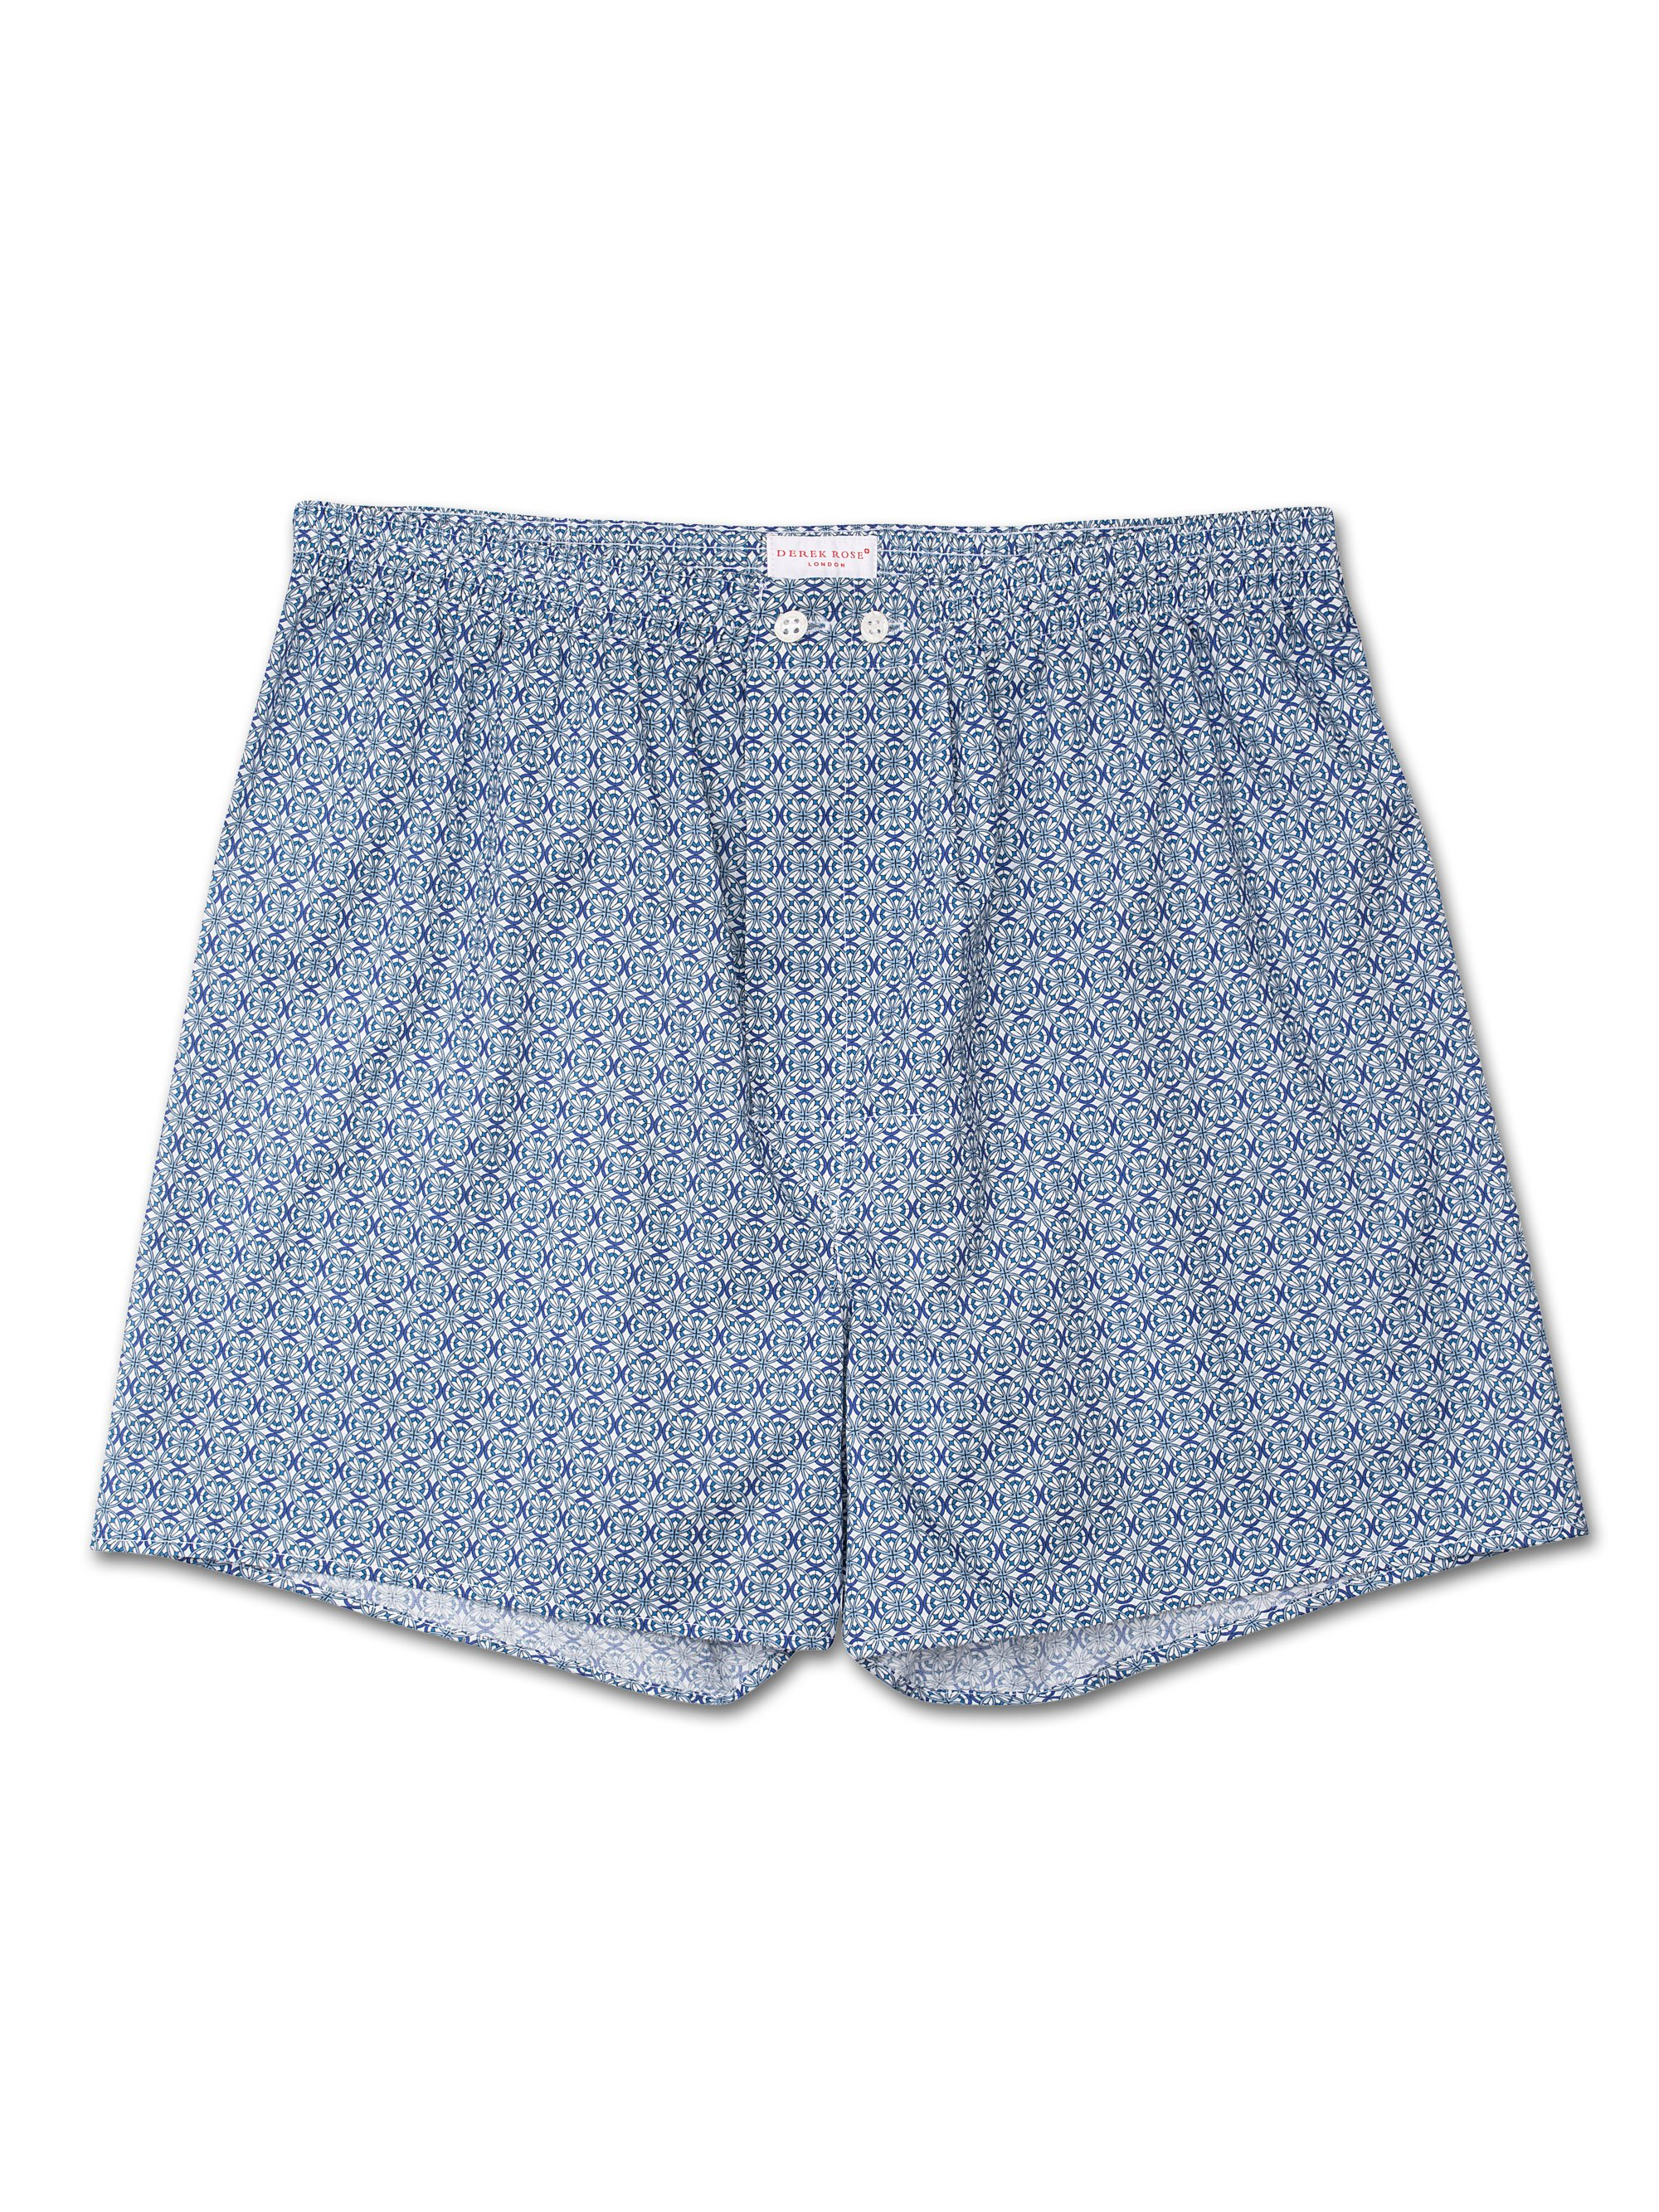 Men's Classic Fit Boxer Shorts Damask 7 Cotton Batiste Blue